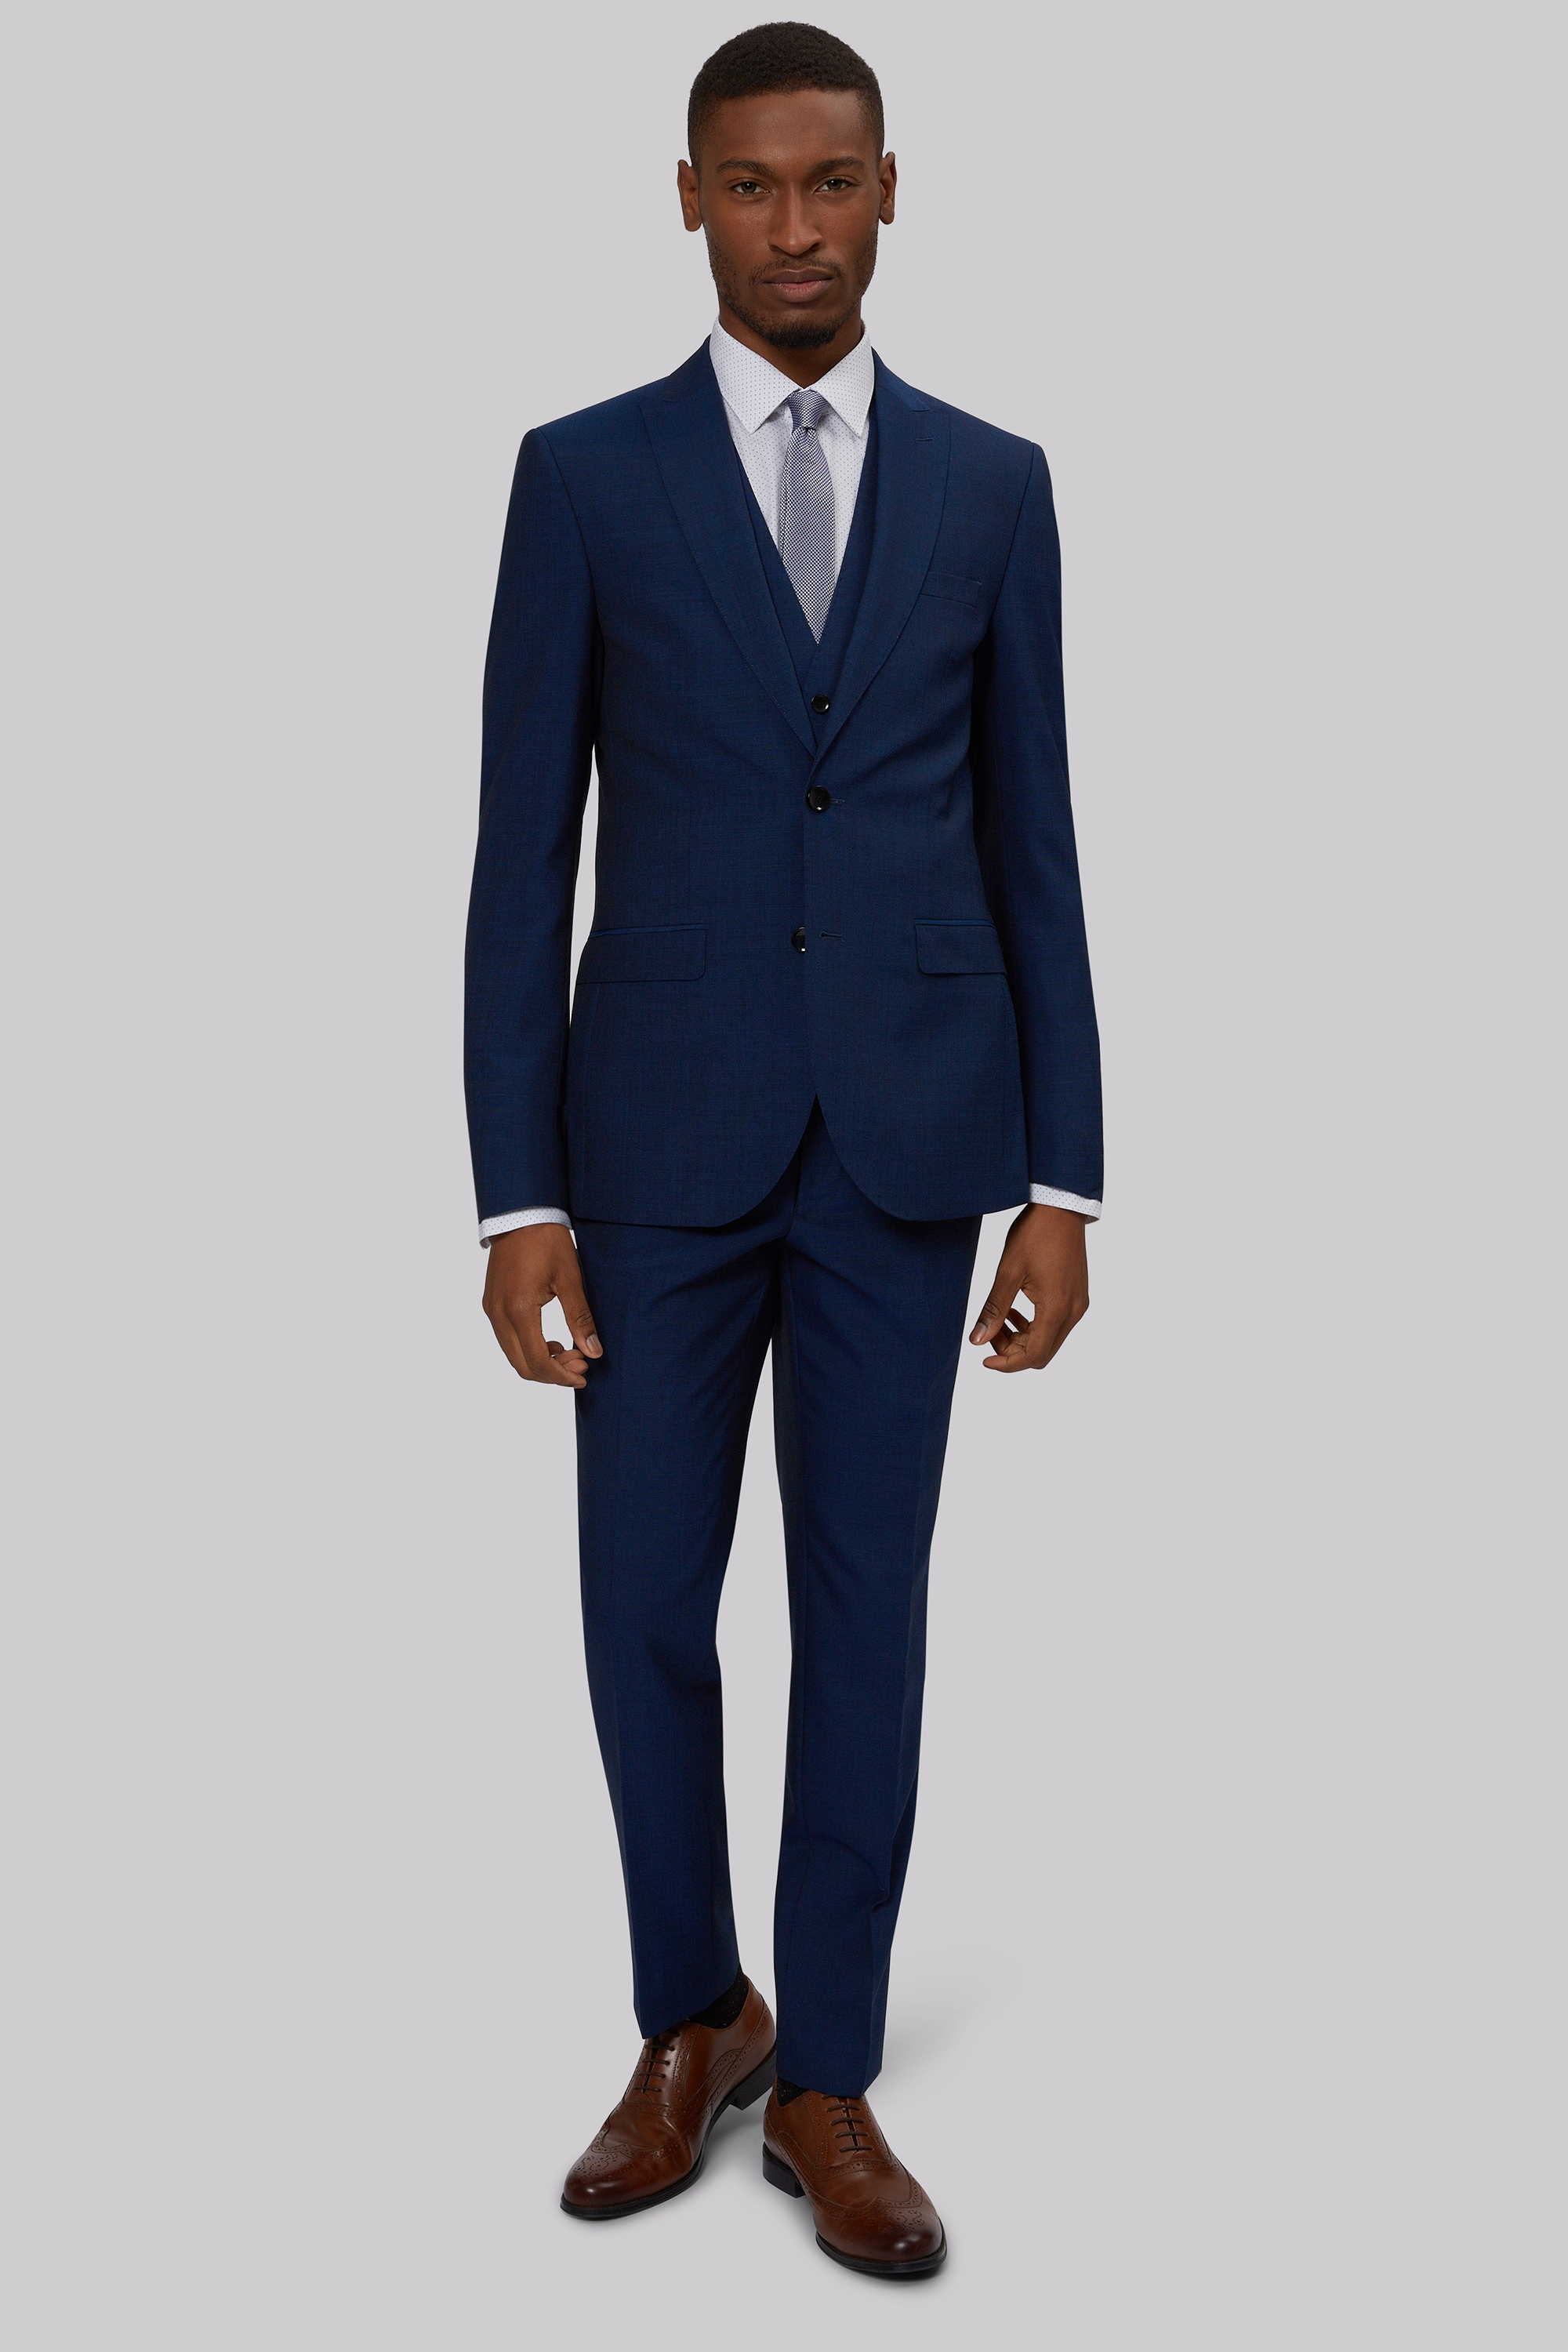 hindu single men in tuxedo Nehru suit- a stand up collar suit  indian wedding shoes  it stormed men's wardrobesthanks to star supporters like johnny carson and the beatles who did .